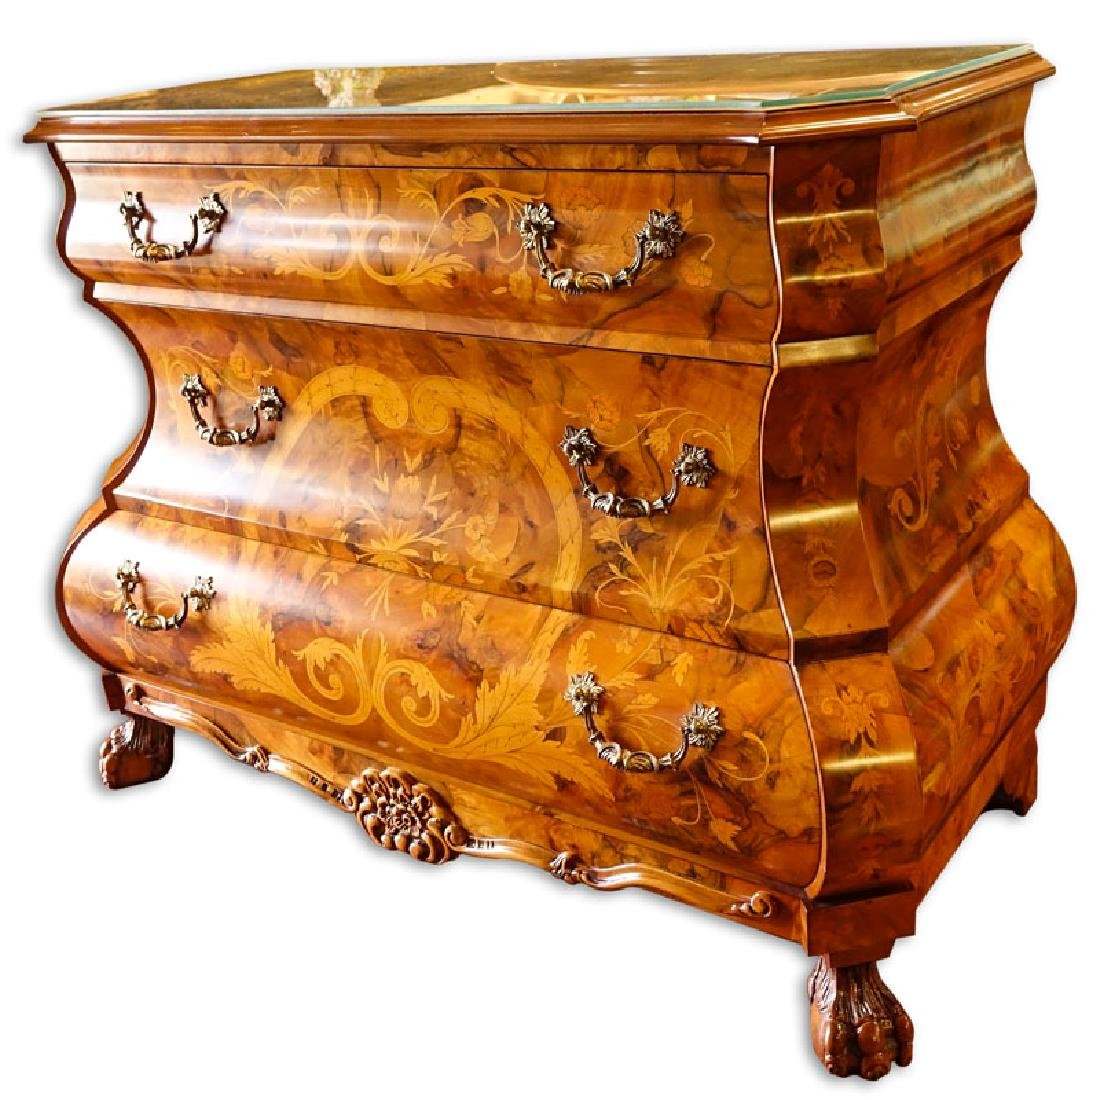 Modern Dutch Style Marquetry Inlaid Chest of Drawers. - 3